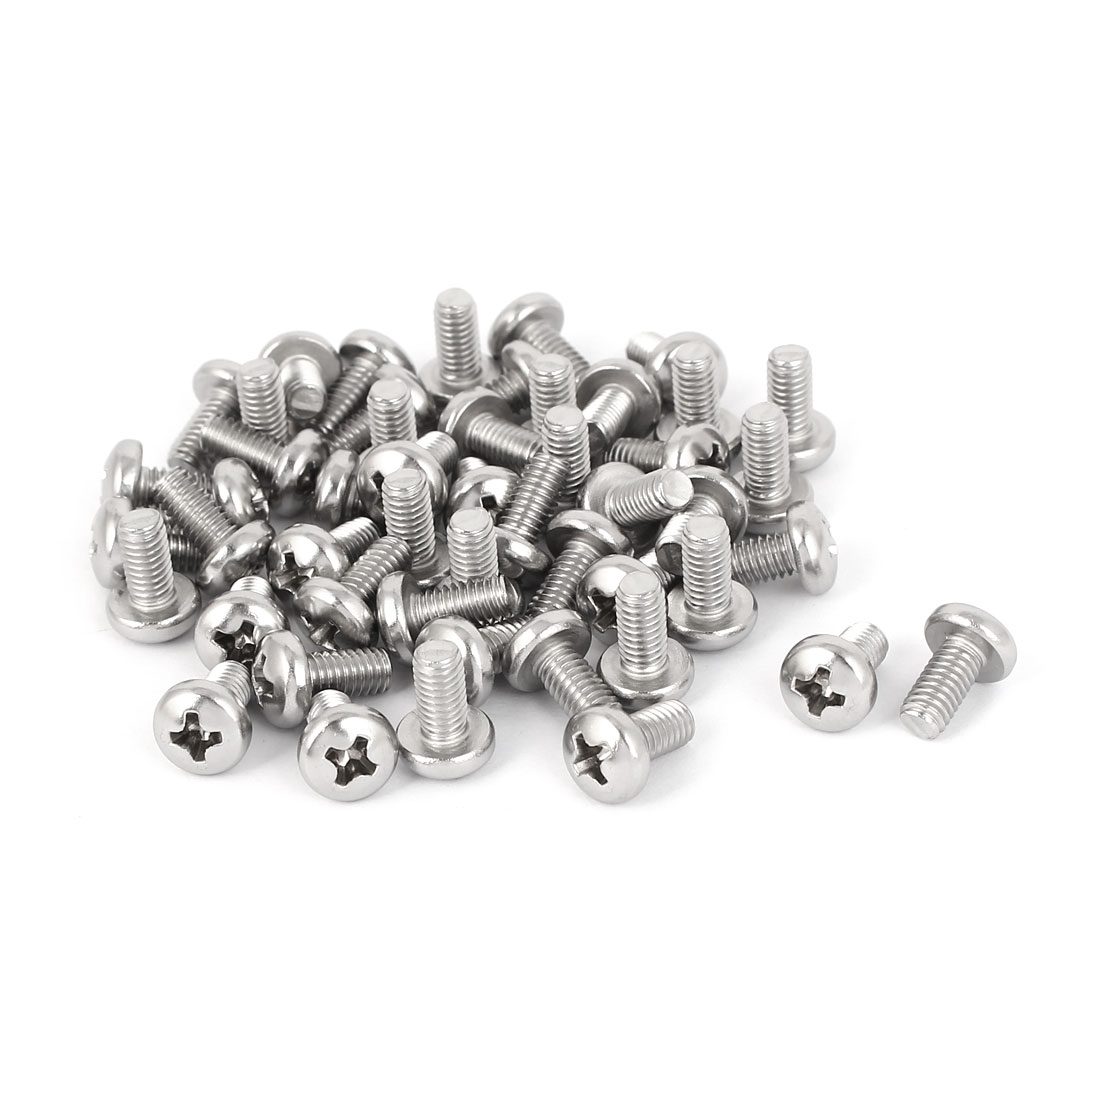 50 Pcs M4x8mm 316 Stainless Steel Phillips Pan Head Machine Screws Fasteners